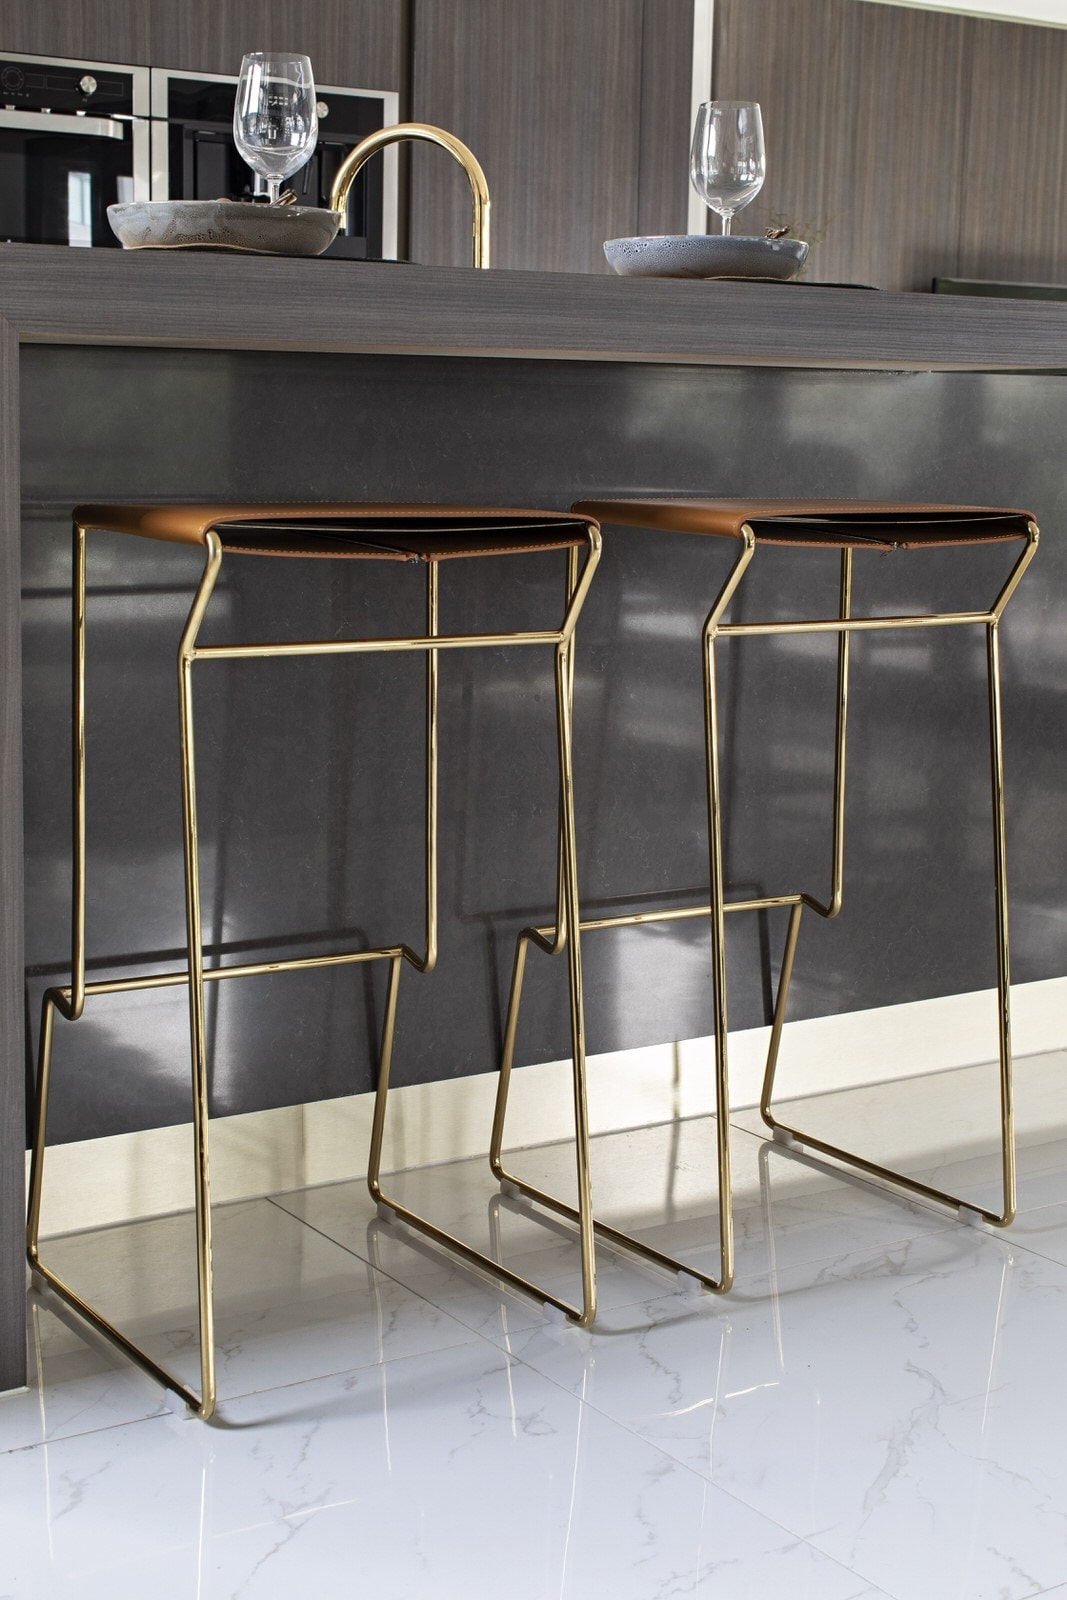 tan leather stools with gold legs in brown kitchen